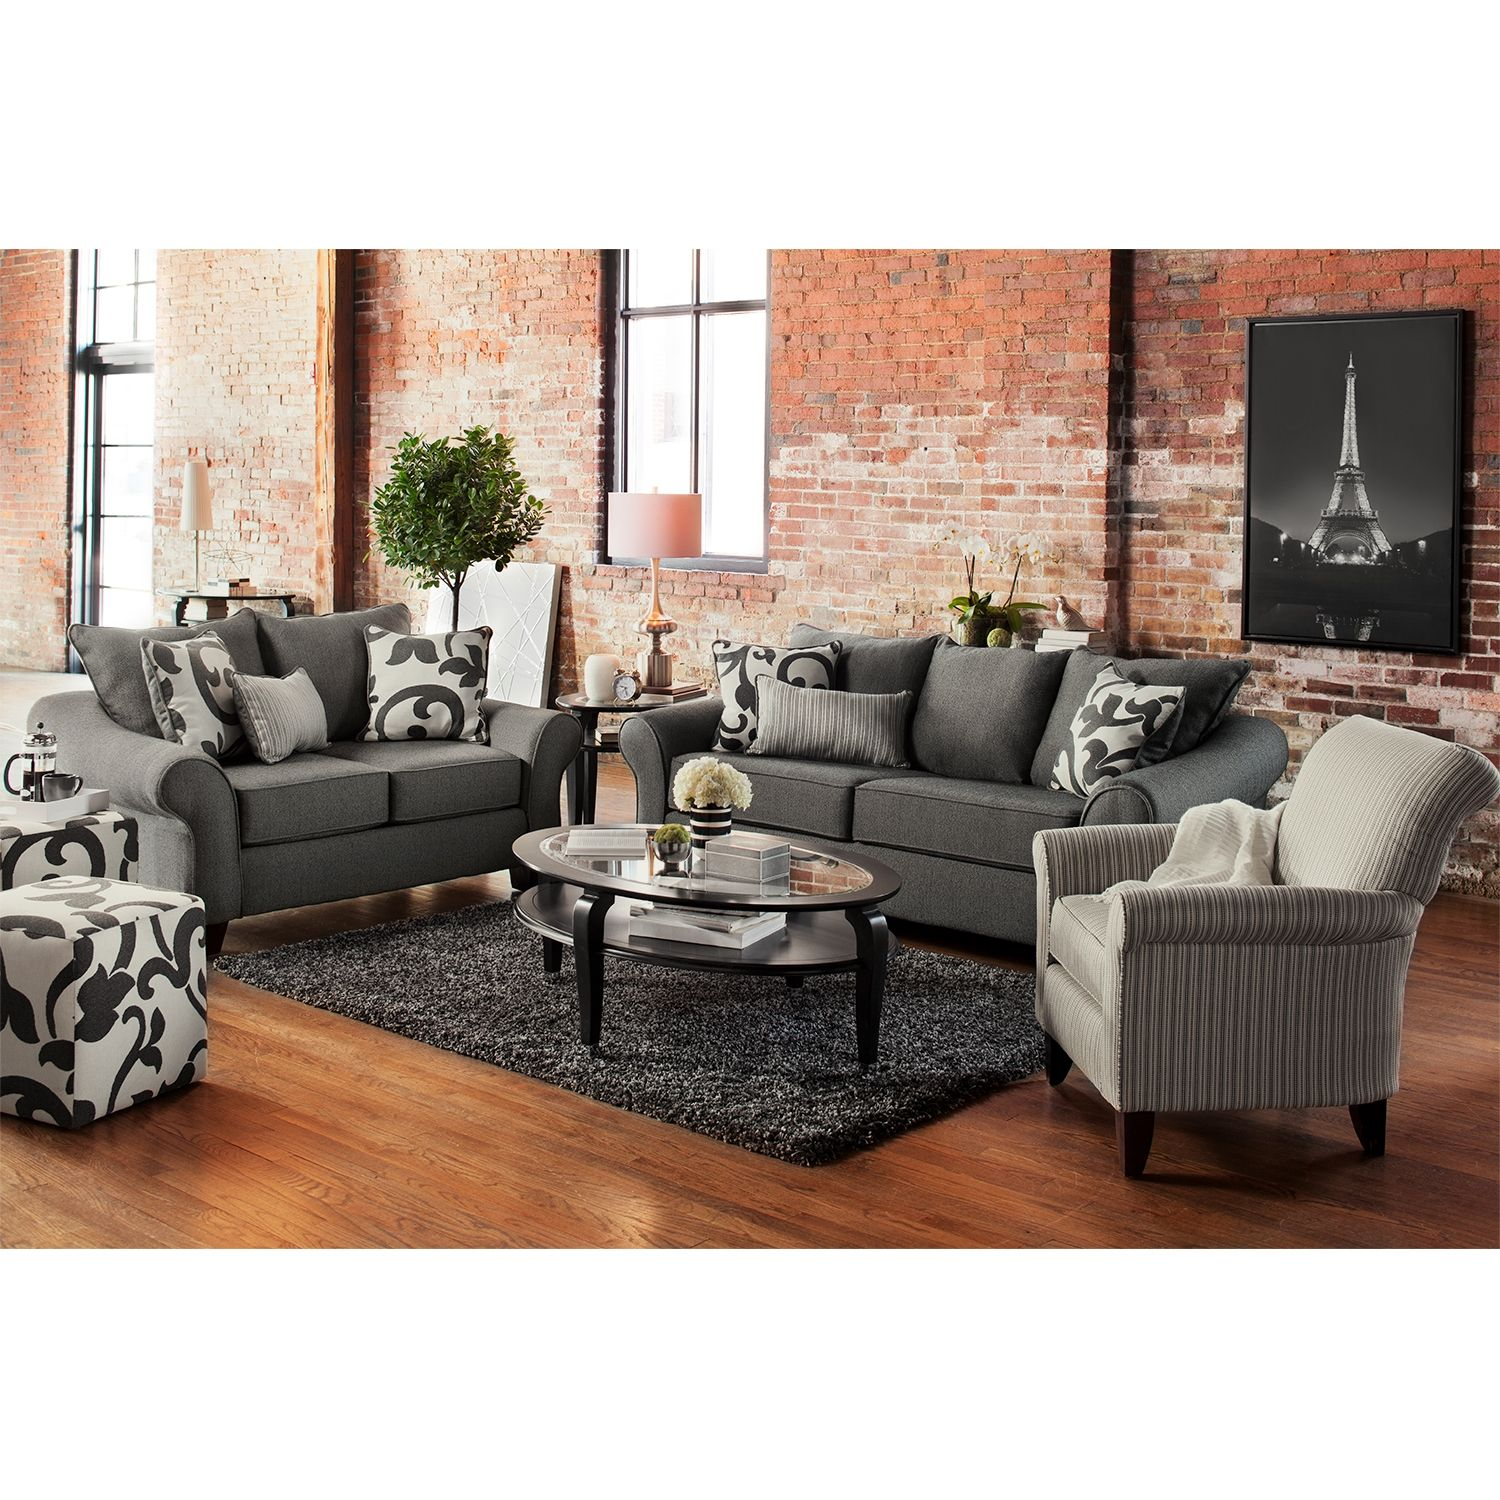 Value City Credit Card An Option For Furniture Purchases Value